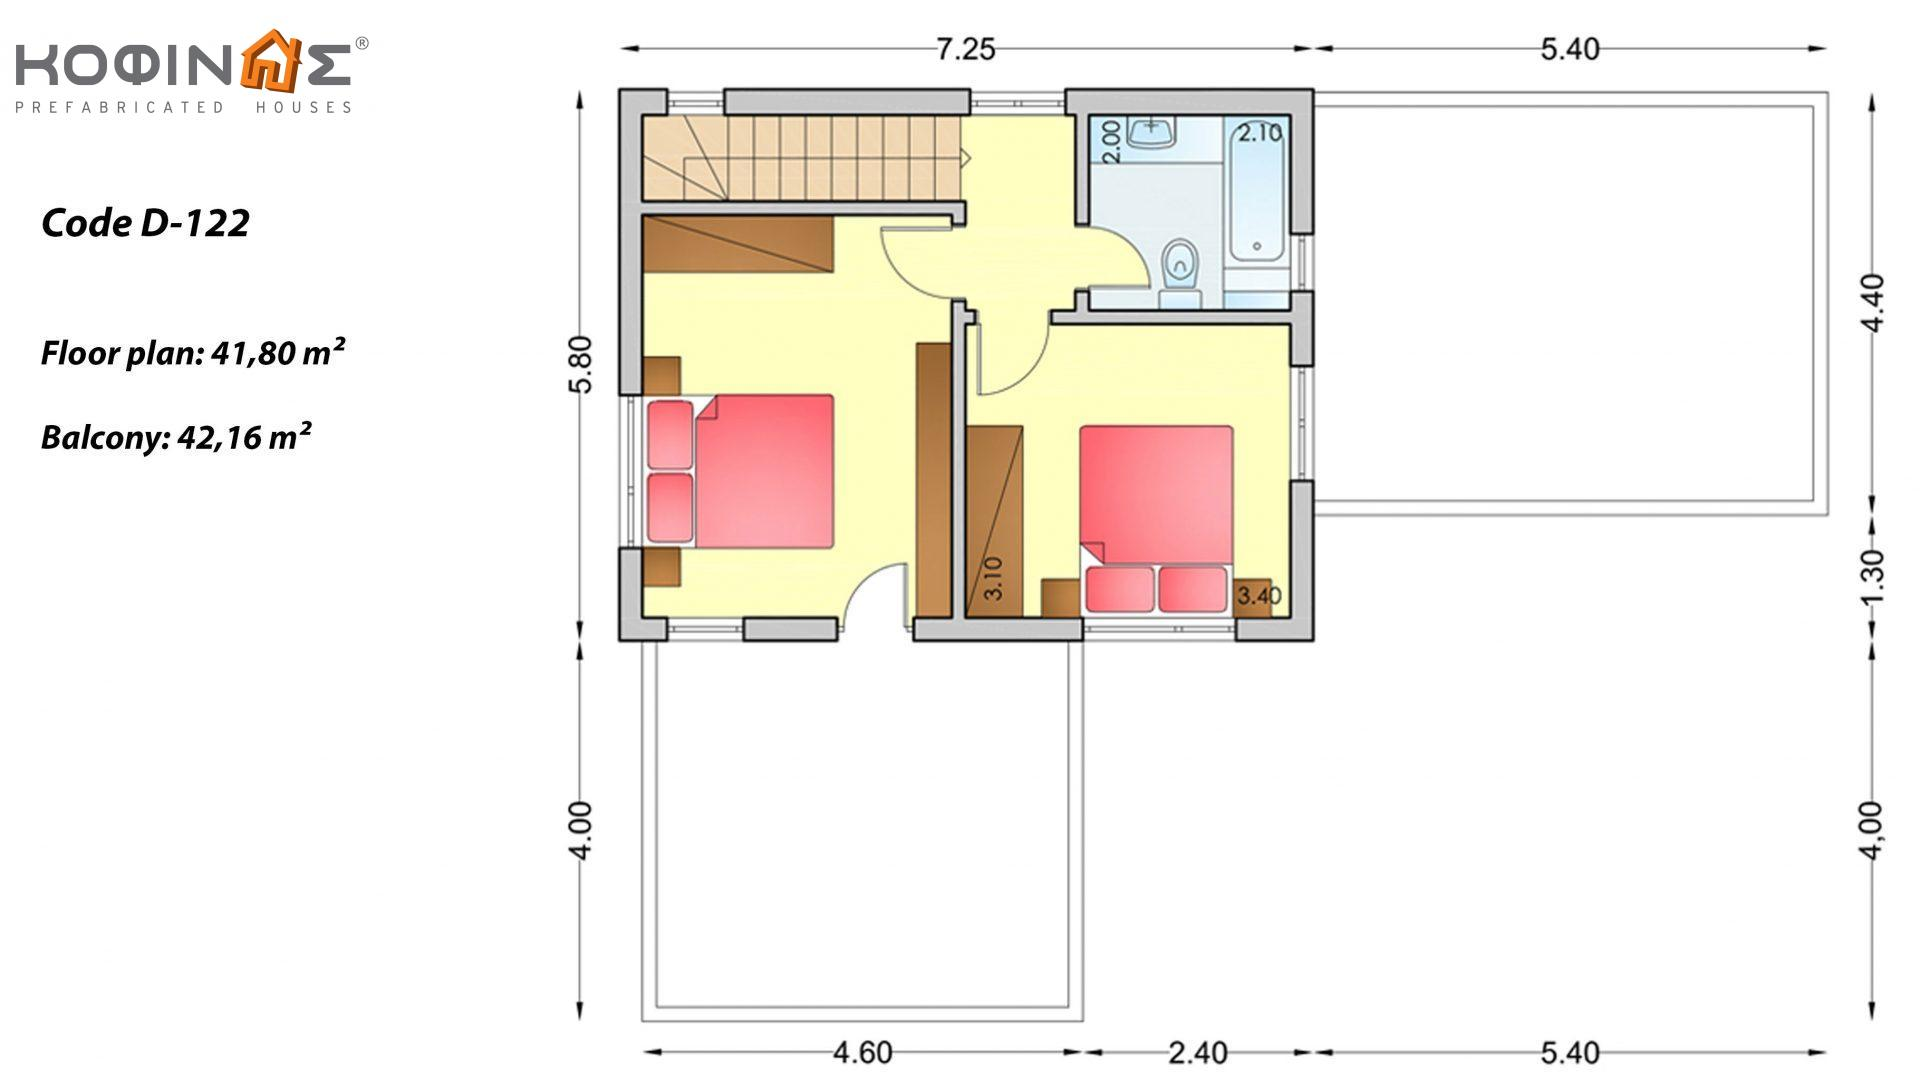 2-story house D-122, total surface of 122,60 m²,roofed areas 18,65 m²,balconies 42,16 m²